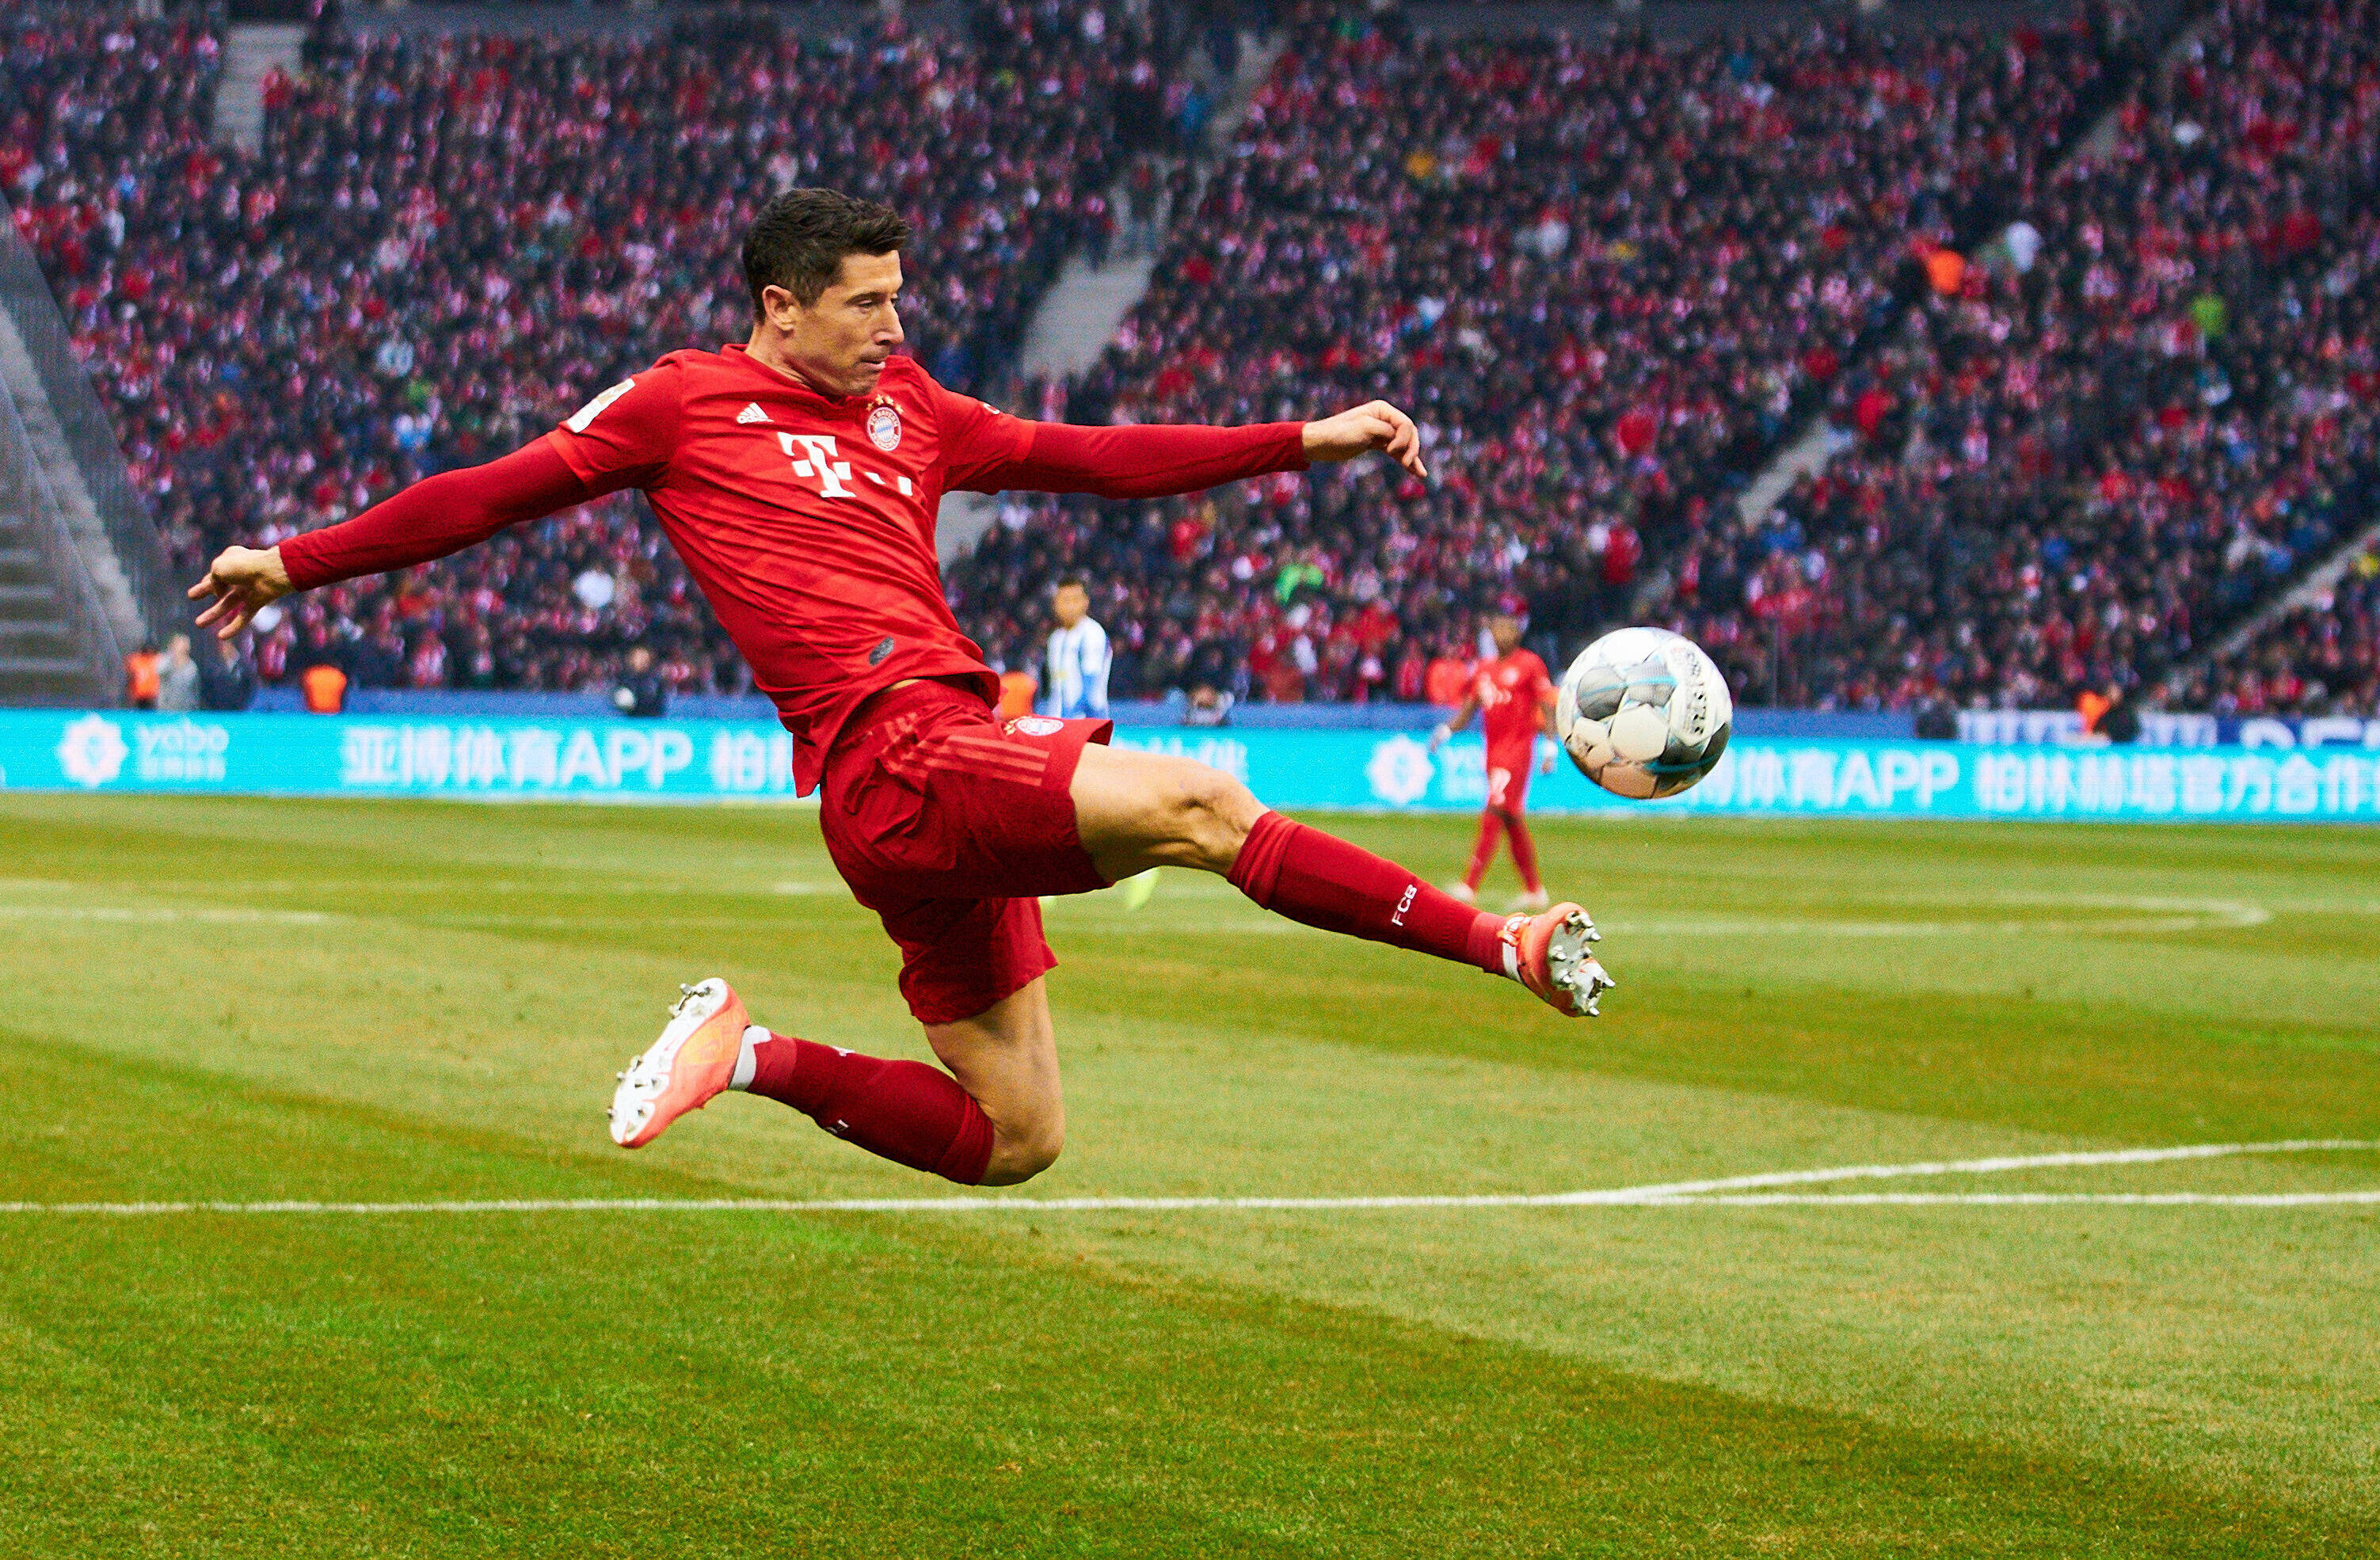 Football - Etranger - Bundesliga : Bayern Munich-Schalke 04 en direct